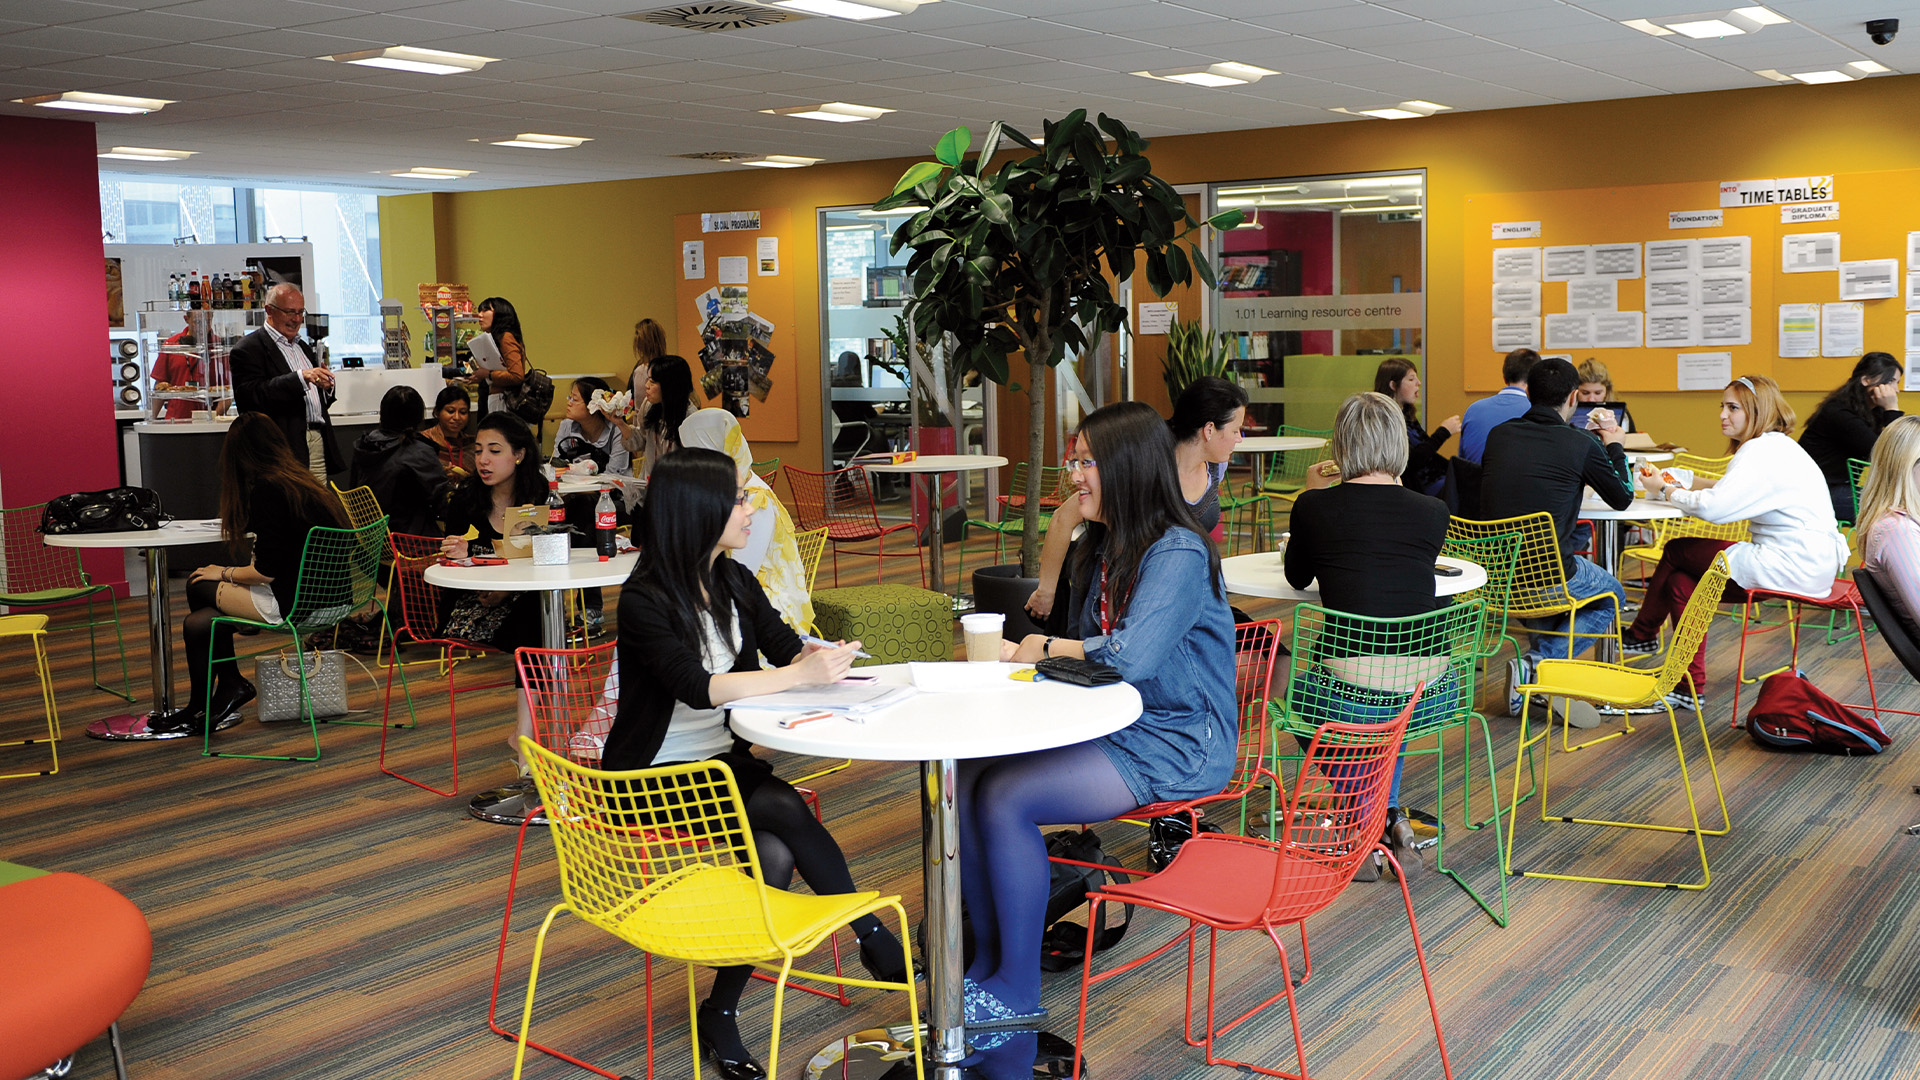 Grab a quick bite to eat between classes at the INTO London campus cafe